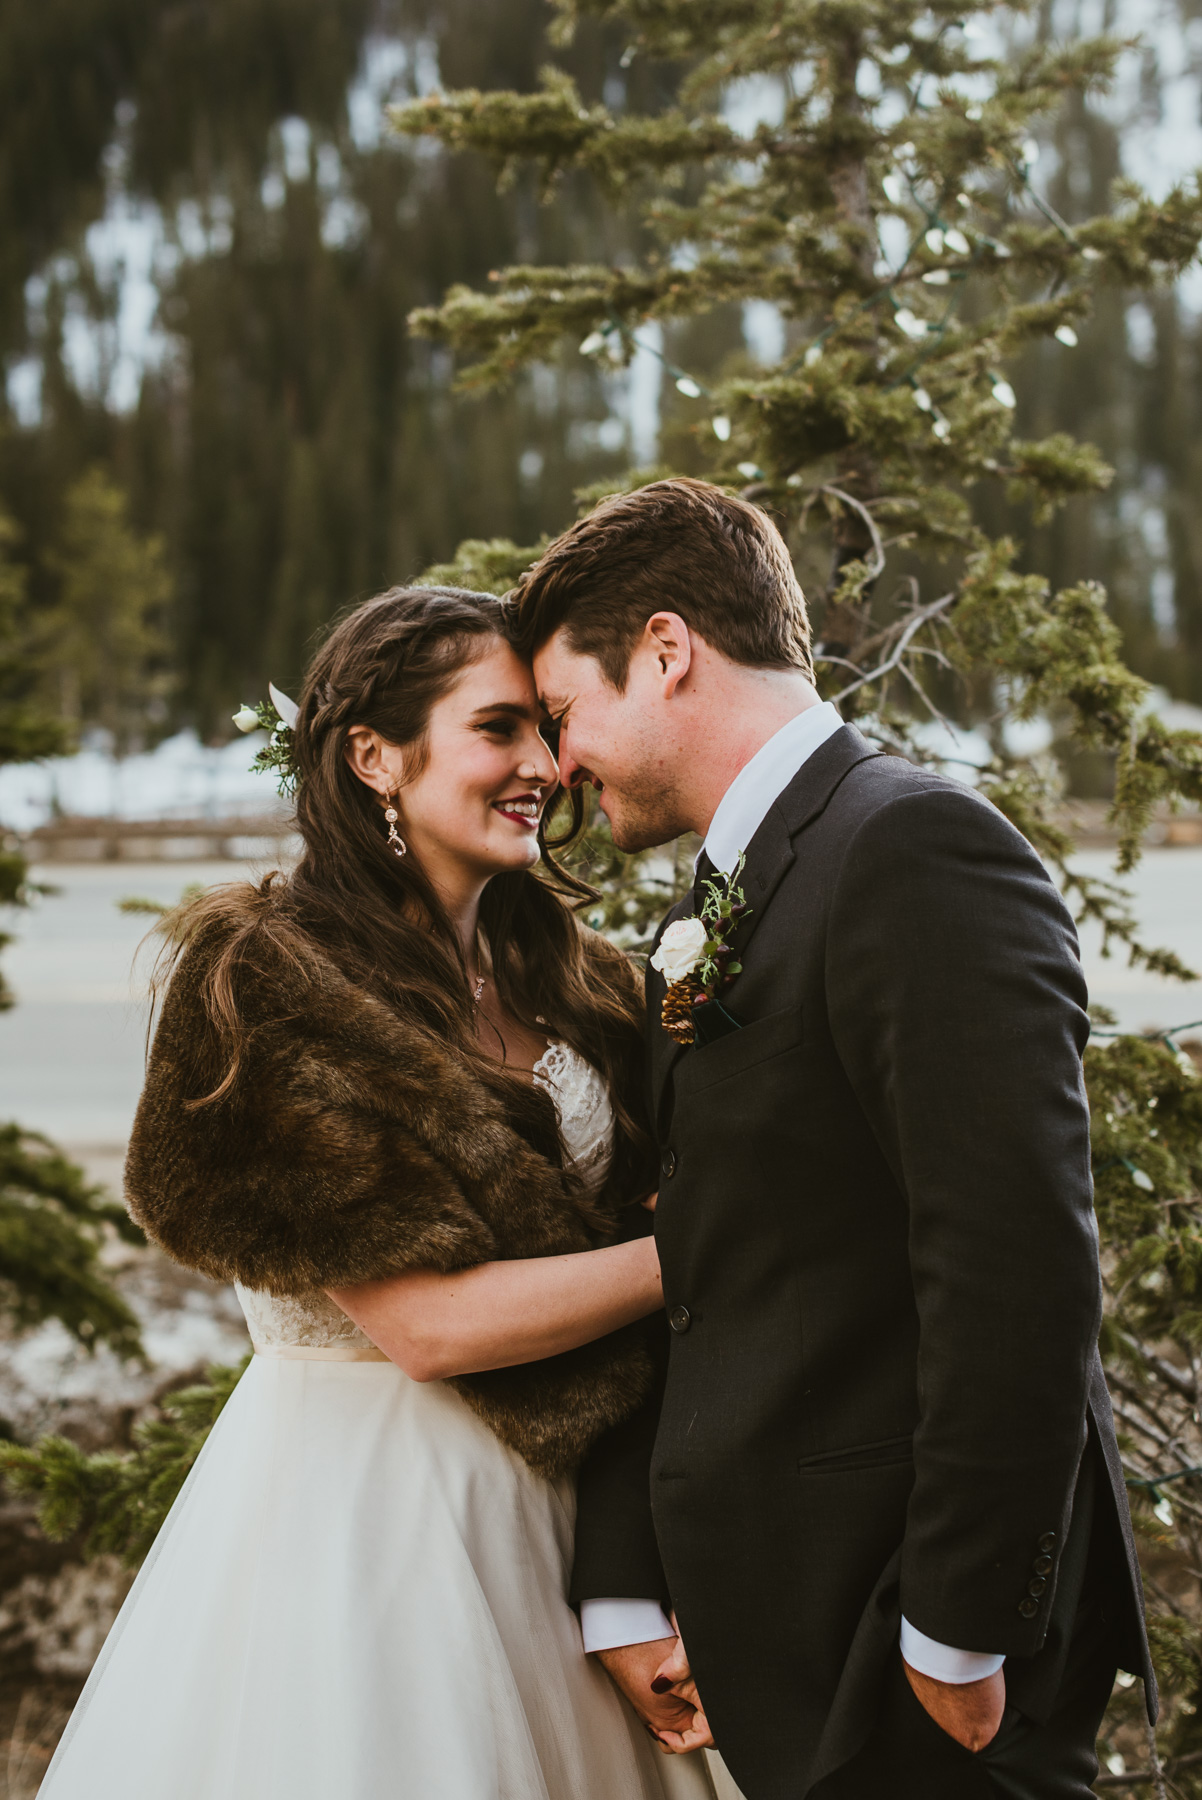 Colt and Abbie got married at the Winter Park Mountain Lodge in Winter Park, Colorado. It was a beautiful snowy day and the bride got her wish for a white wedding.